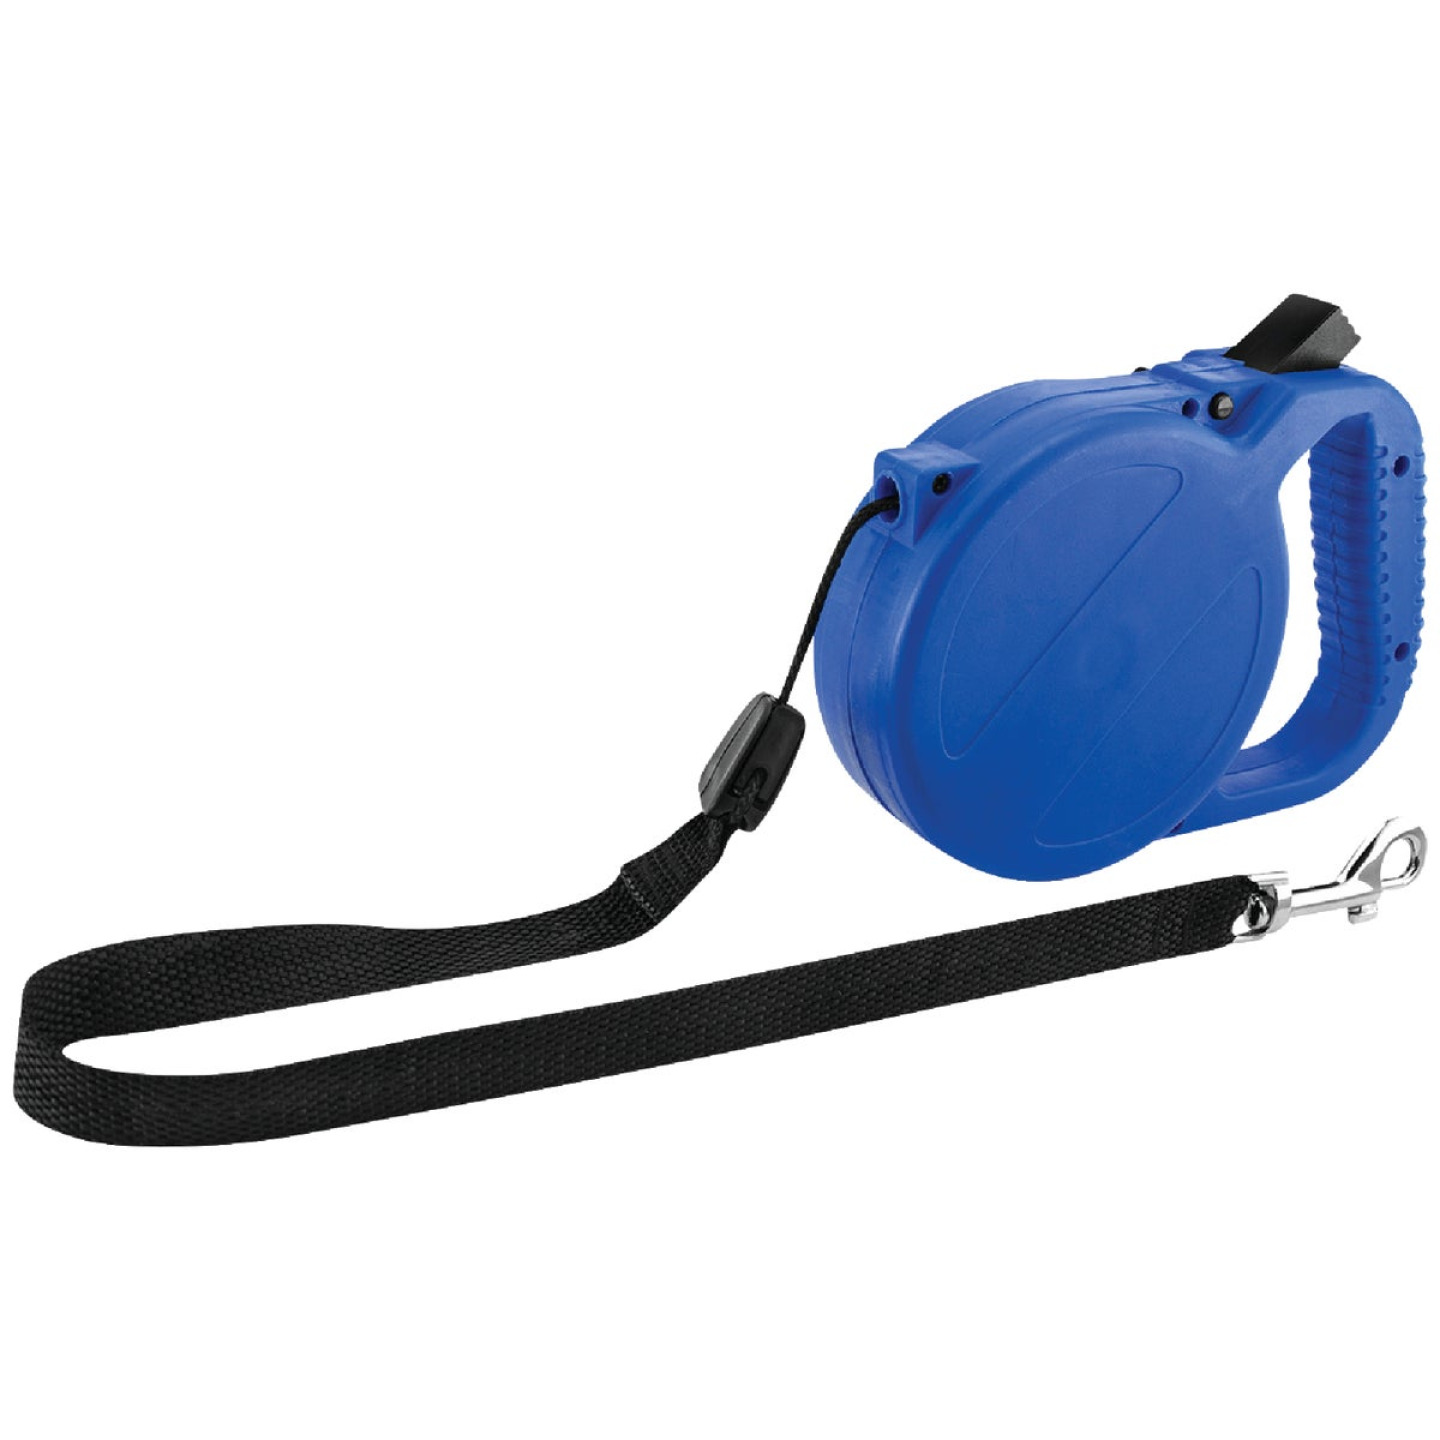 Westminster Pet Ruffin' it 26 Ft. Webbed Up to 100 Lb. Dog Retractable Leash Image 3